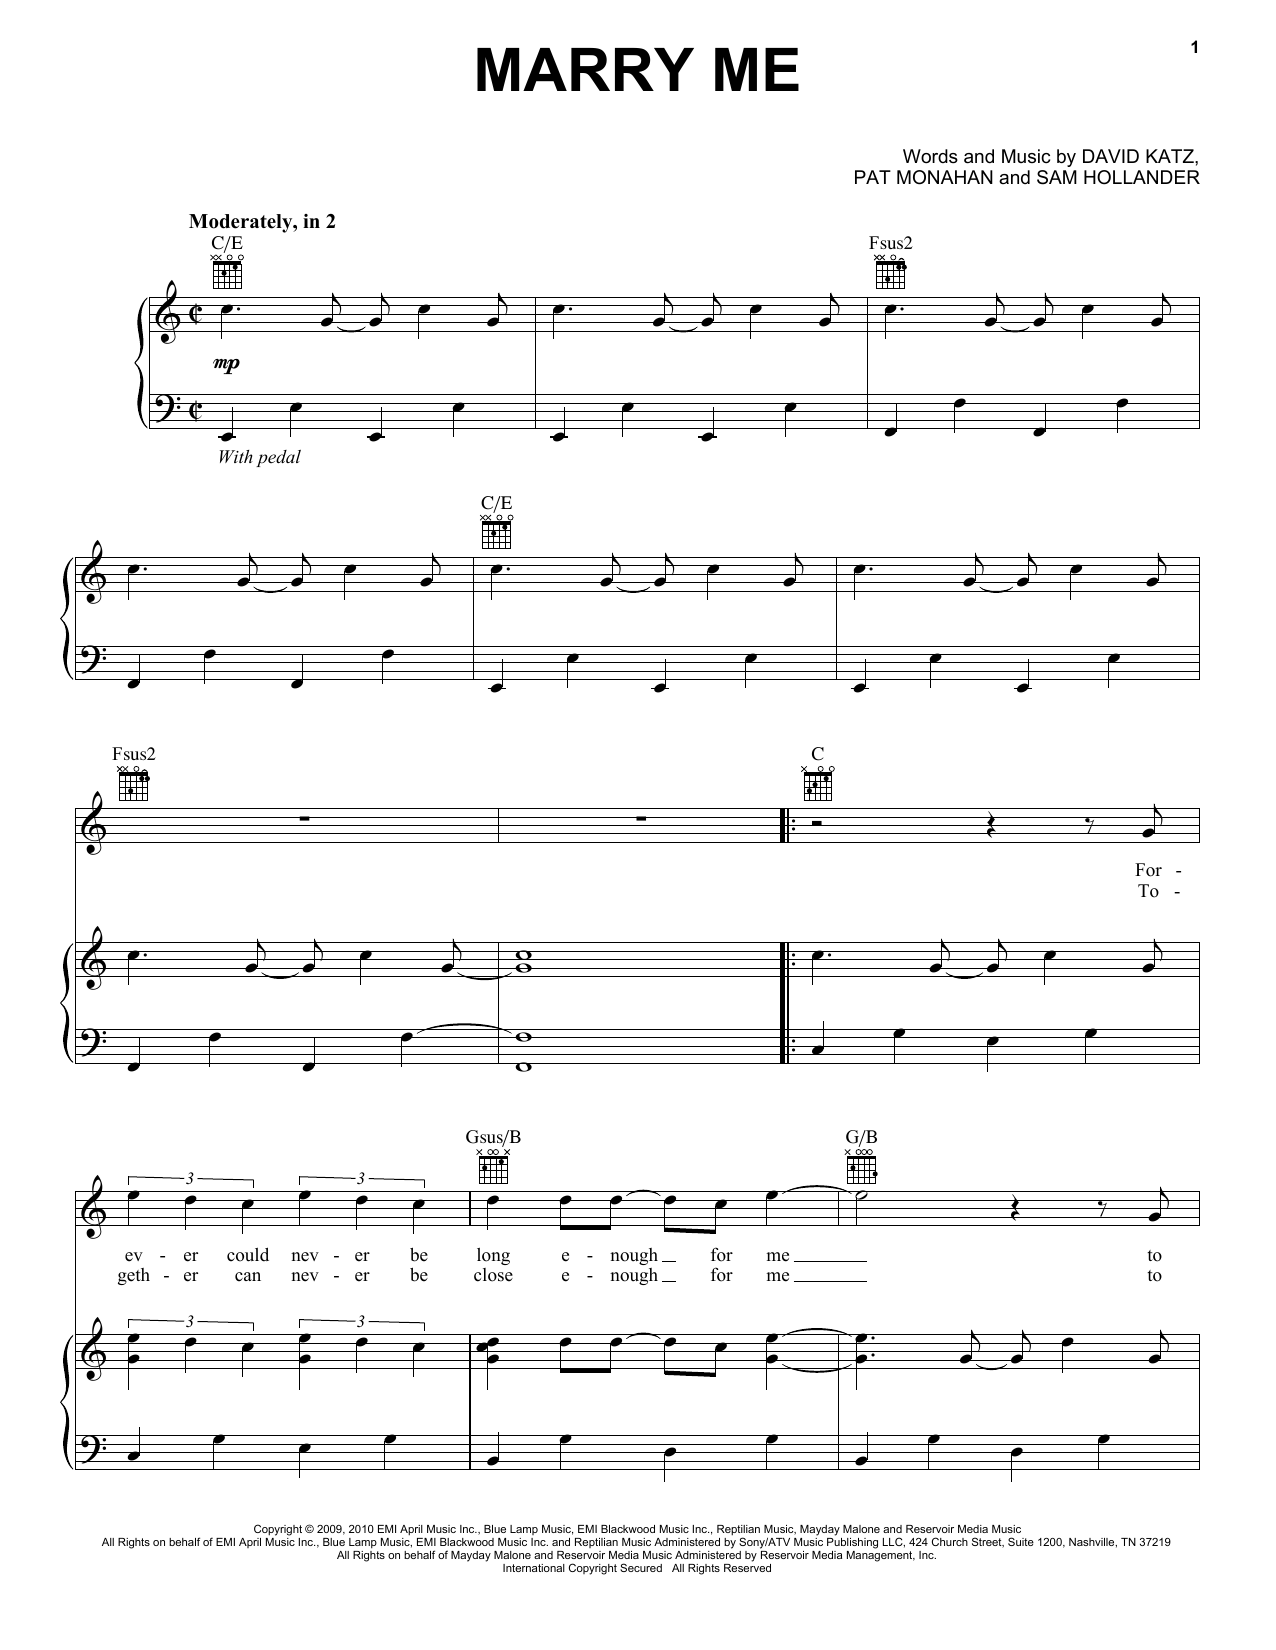 Train Marry Me sheet music notes and chords. Download Printable PDF.